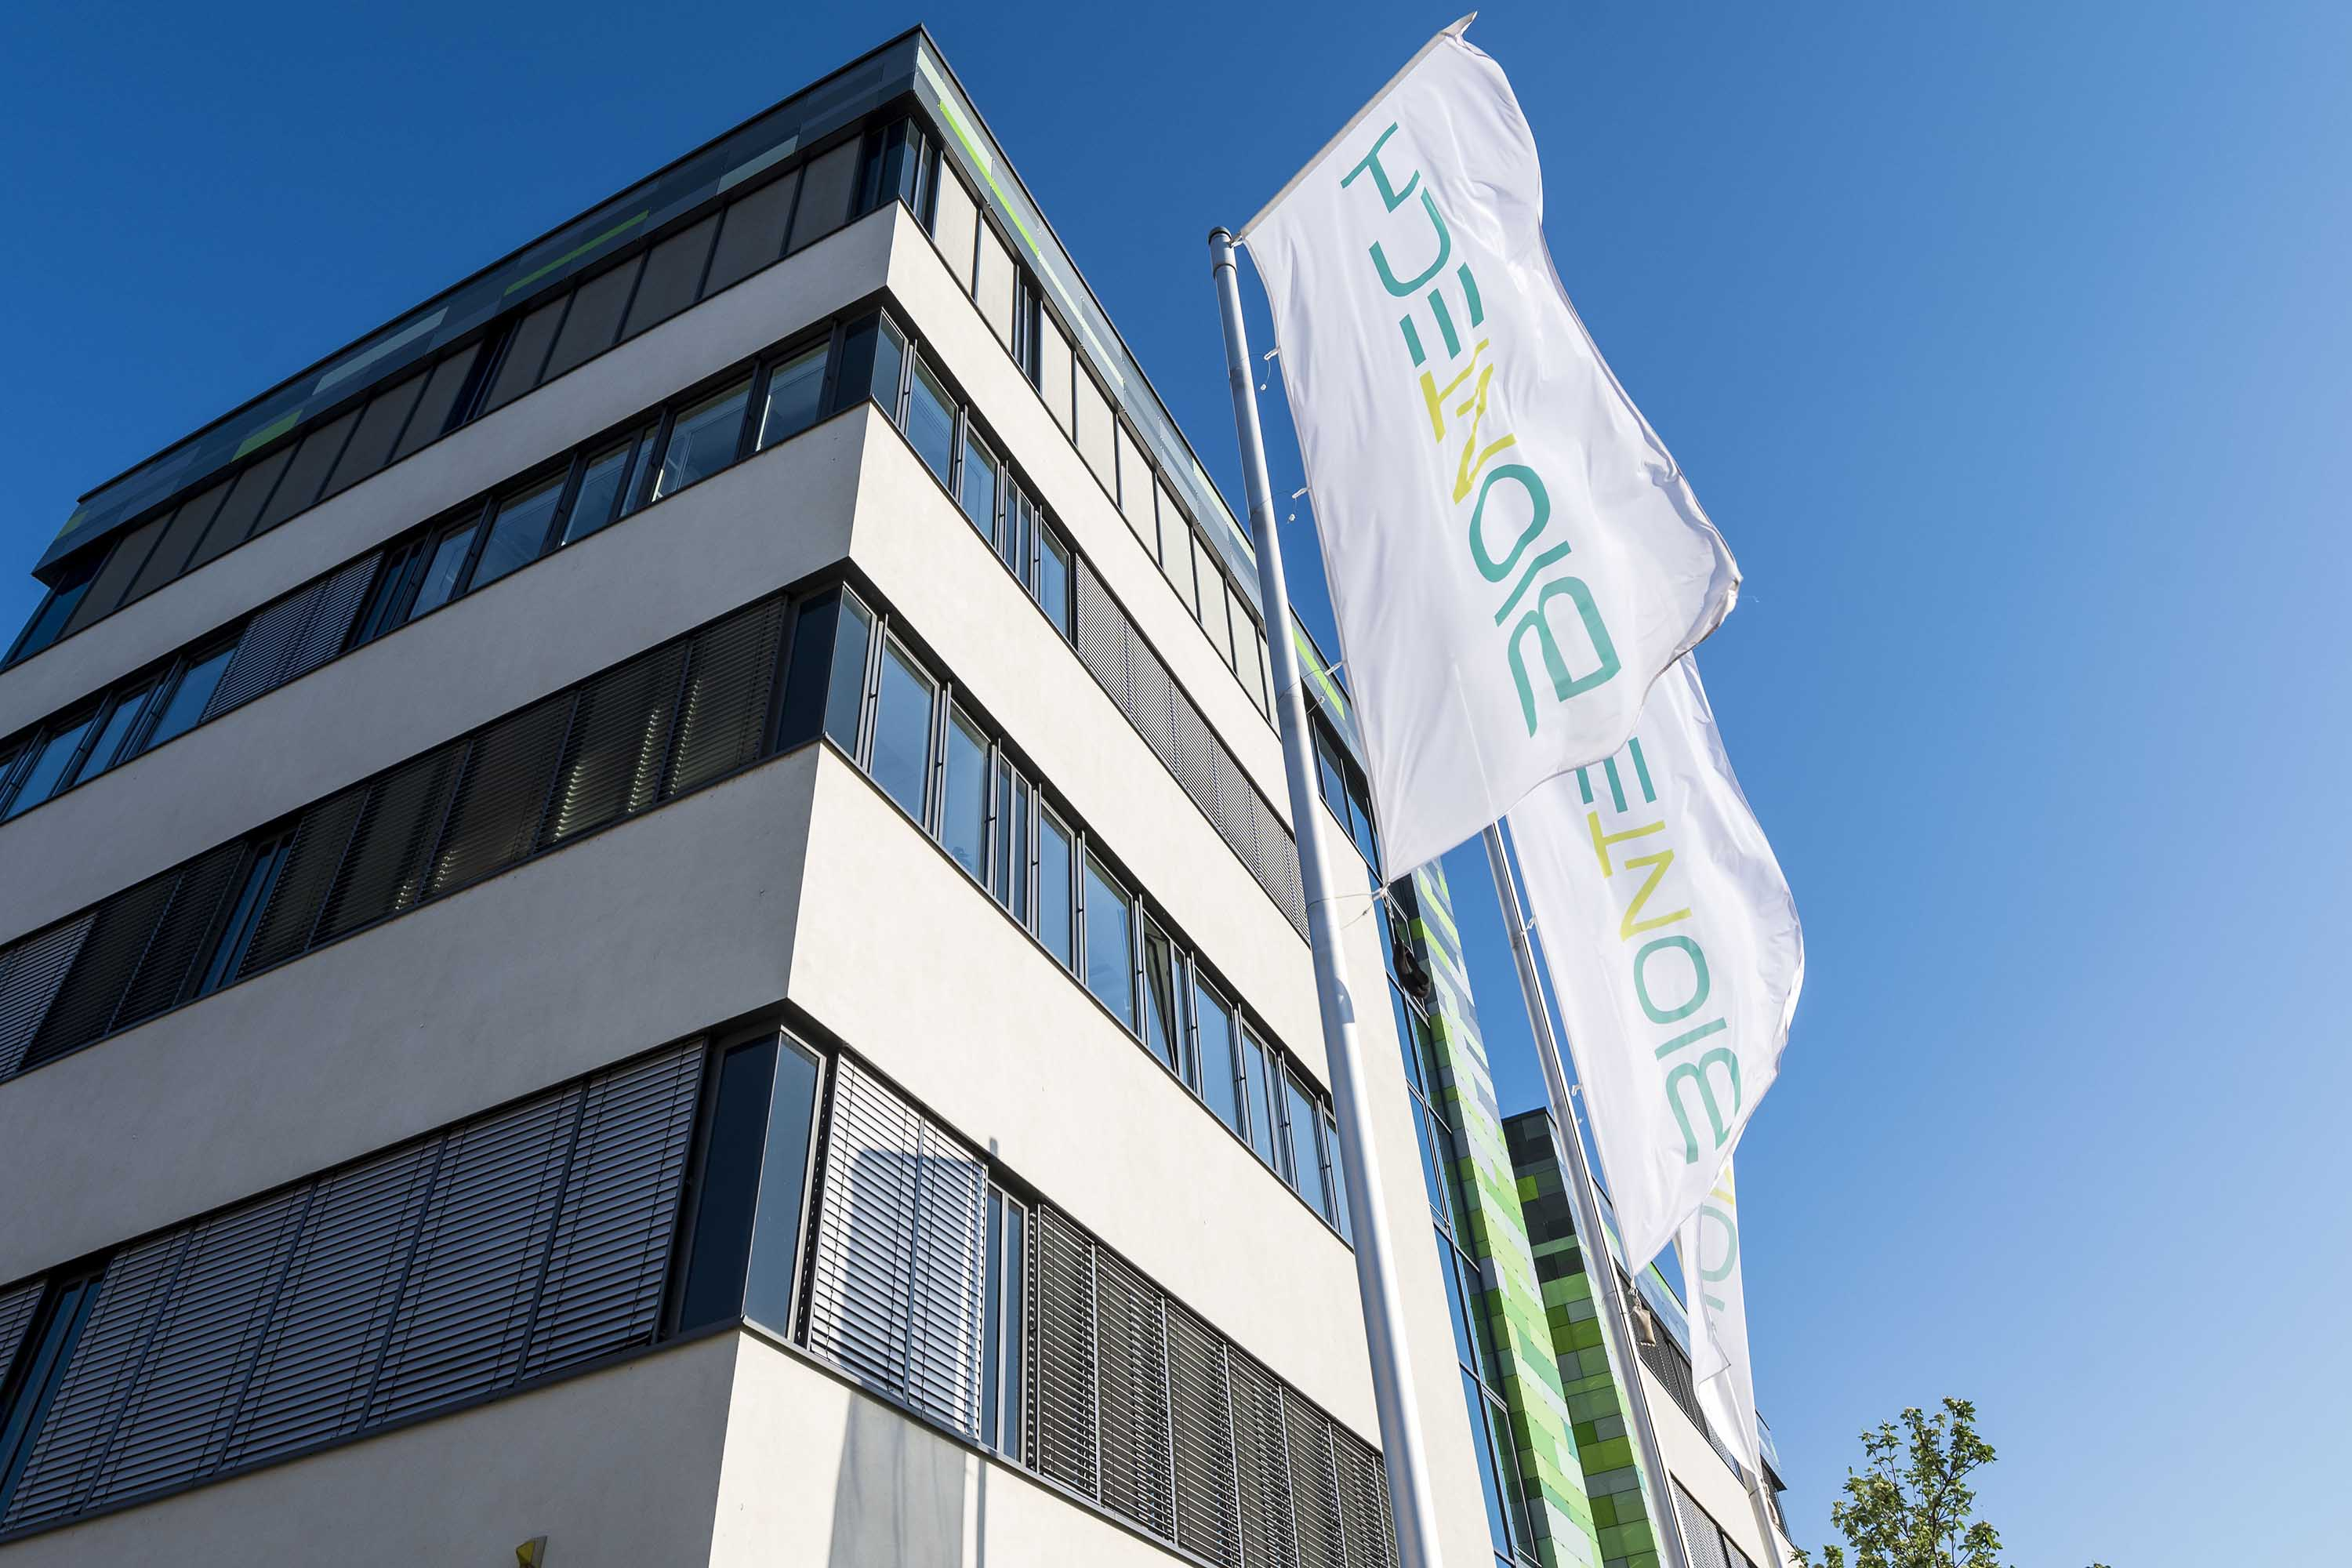 The headquarters of German company BioNTech is pictured on April 22, in Mainz, Germany.